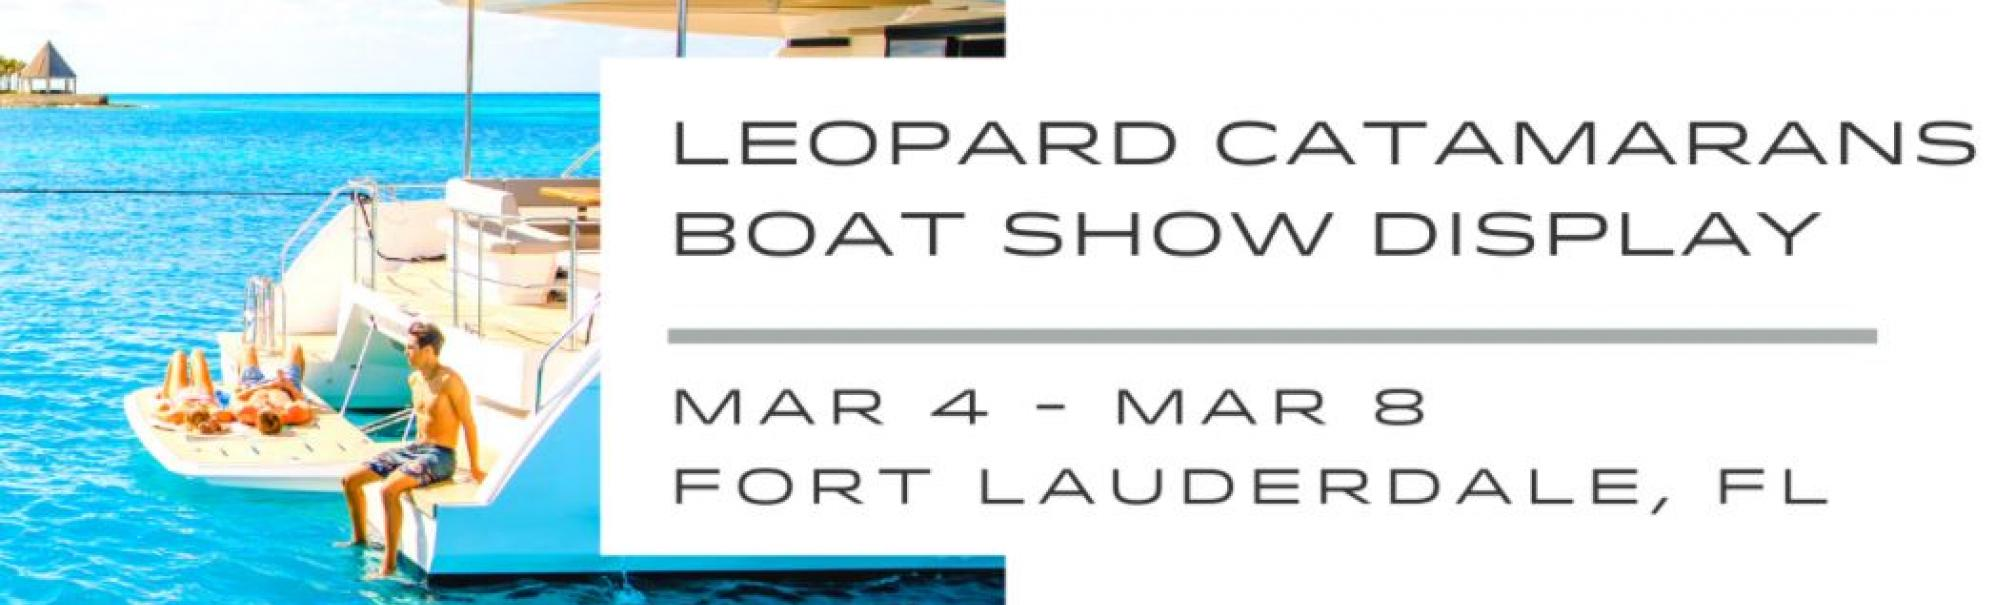 Leopard Catamarans open house